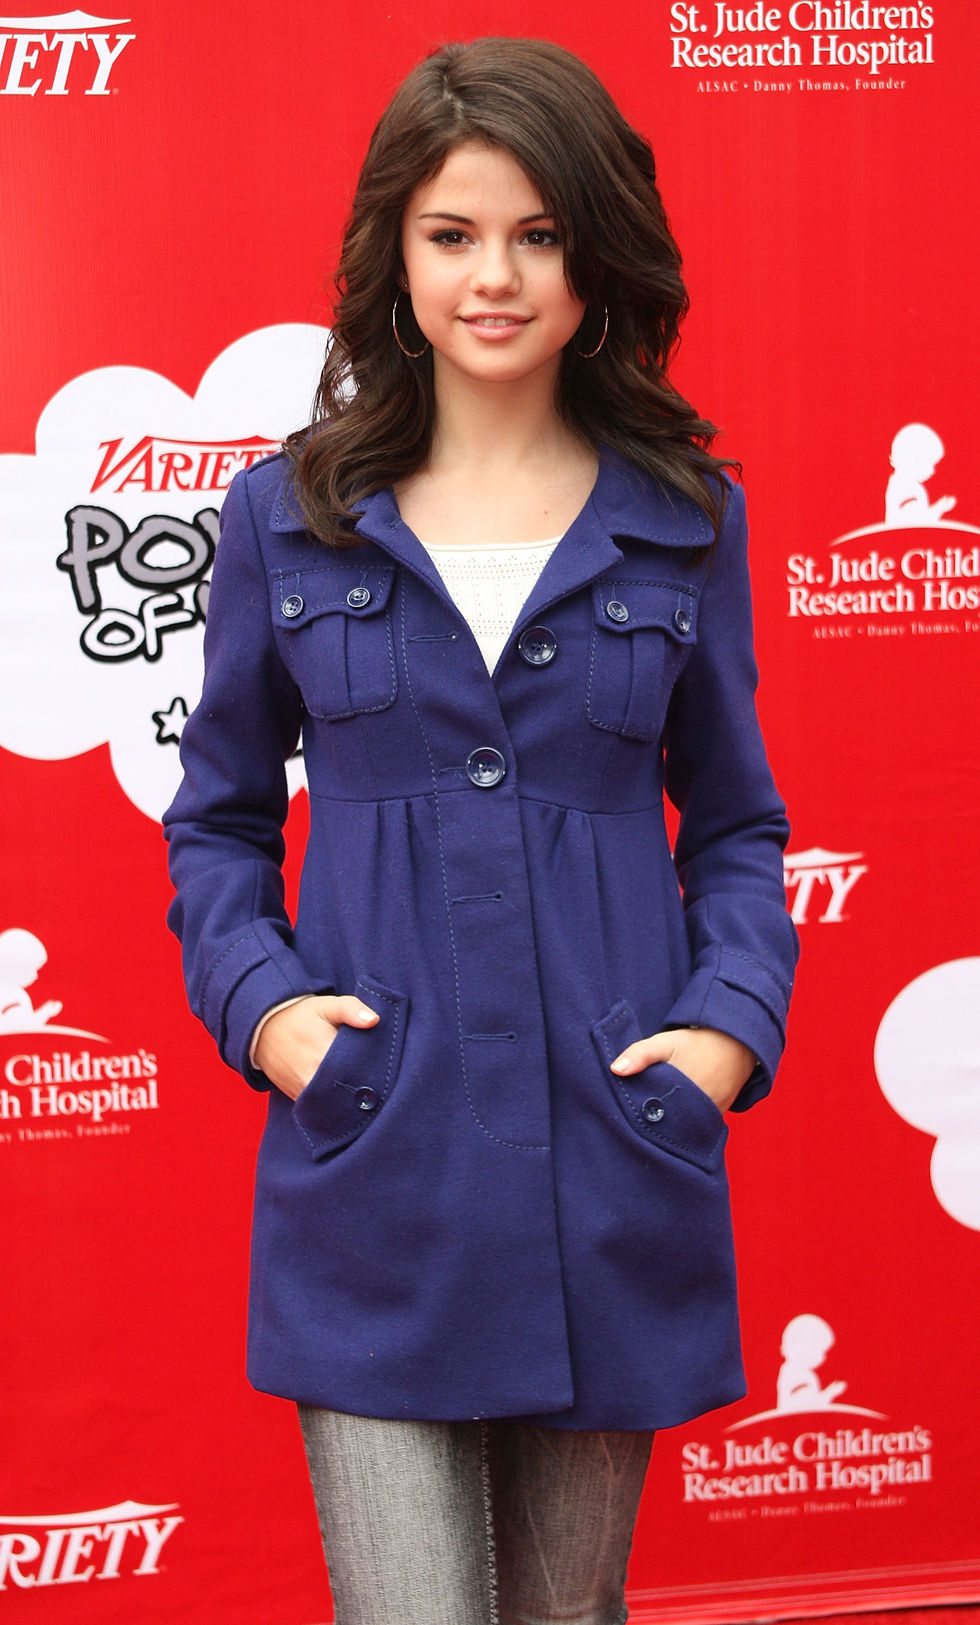 selena-gomez-varietys-power-of-youth-event-in-los-angeles-01